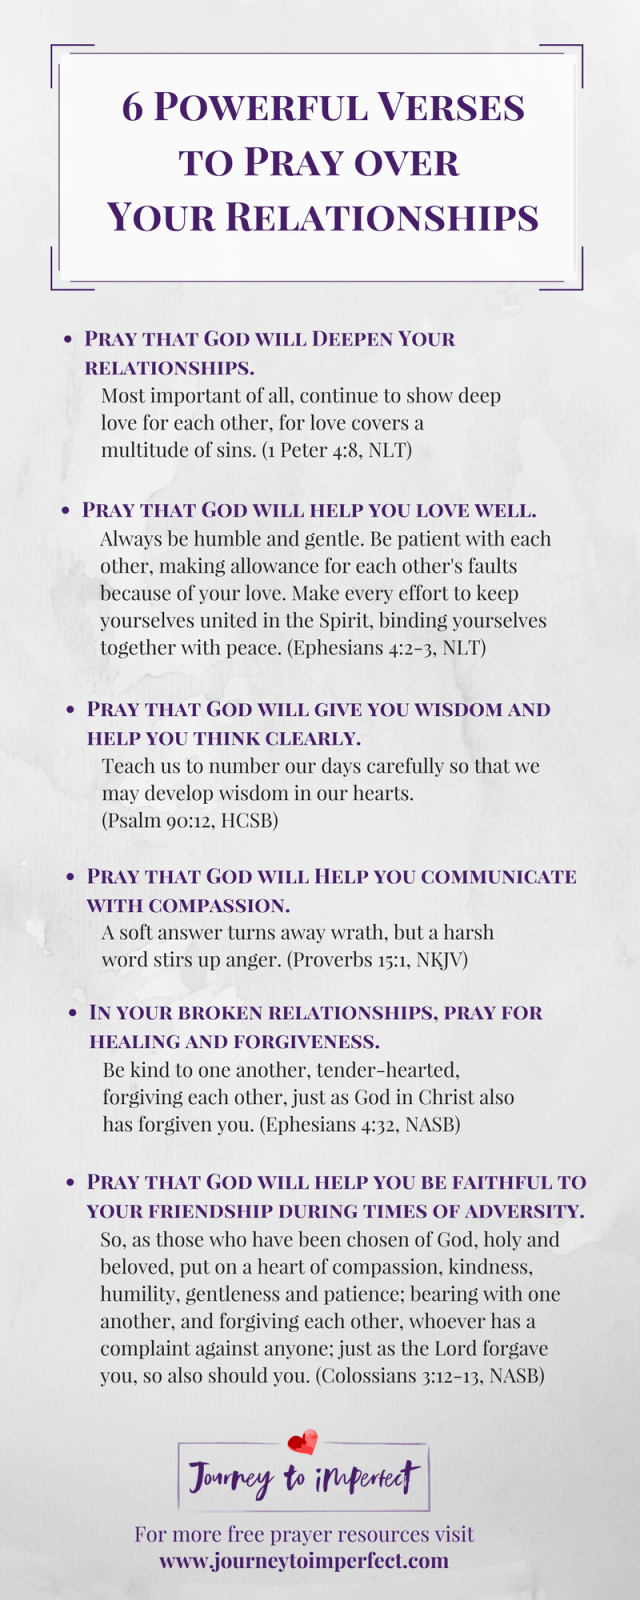 Prayer changes things, especially when it comes to relationships! Pray these powerful verses over your relationships for lasting impact, healing, and renewal from a God who cares!